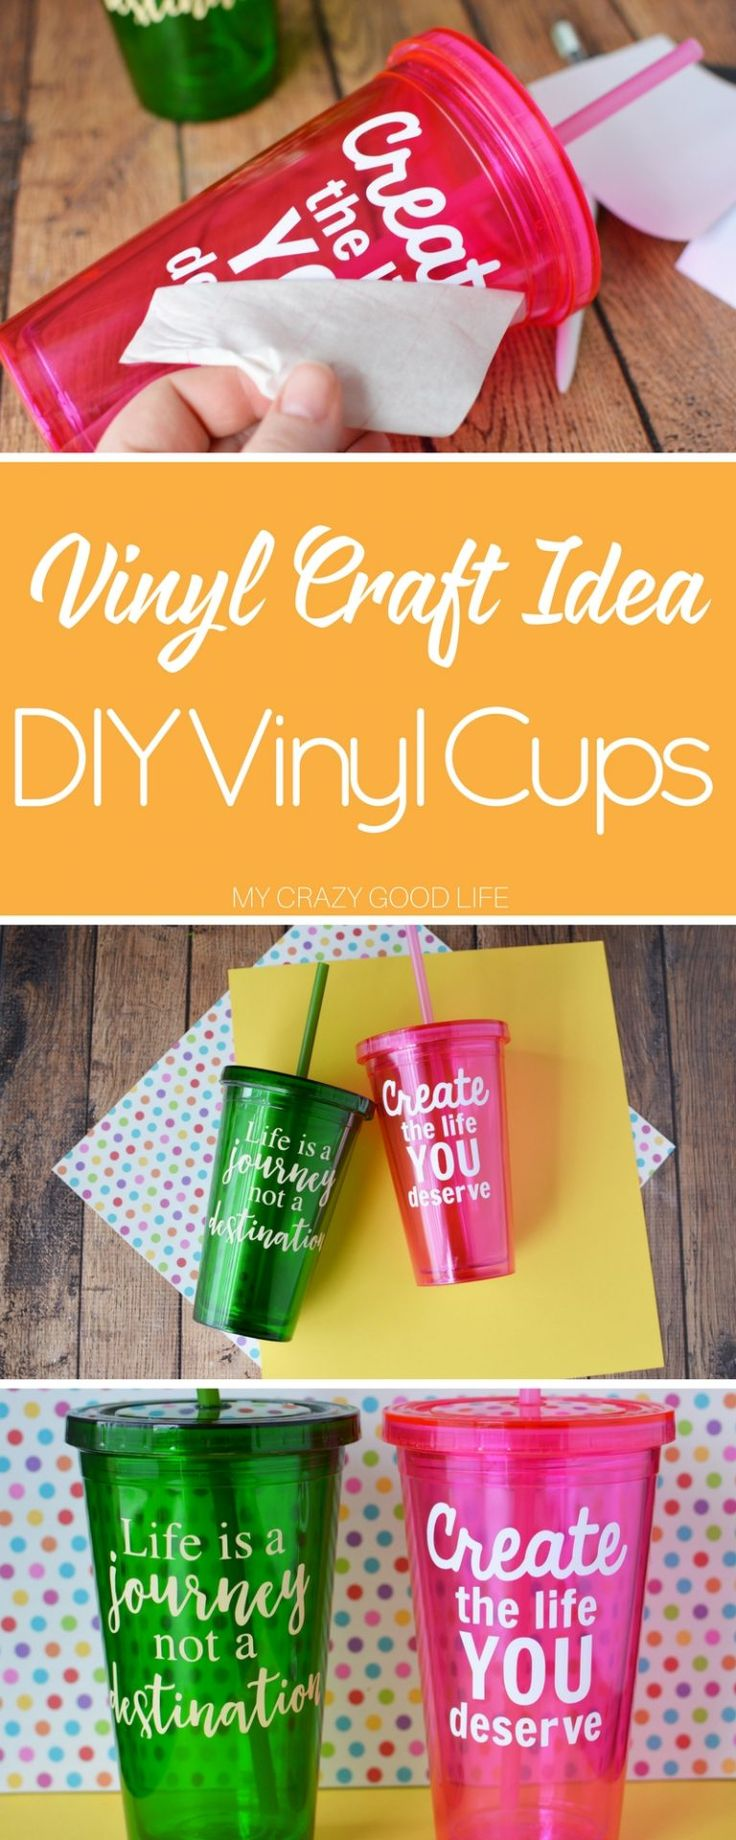 Cheap vinyl for crafts - These Diy Vinyl Cups Are Adorable And Versatile They Are A Perfect Vinyl Craft Idea